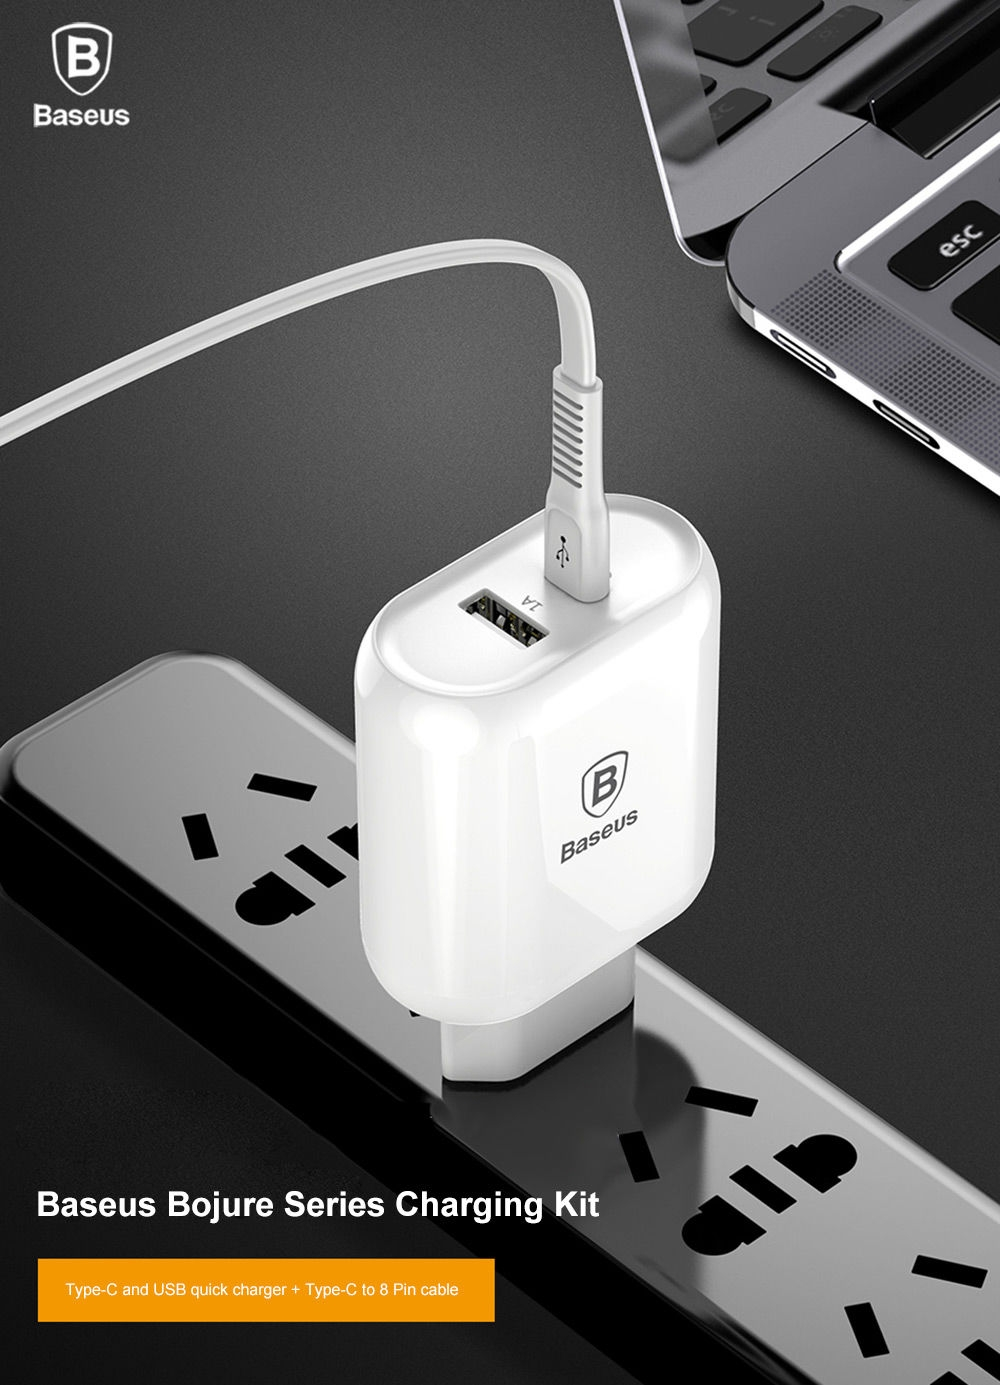 Baseus Bojure Series Charging Set 32W Type-C PD3.0 and USB Quick Charger + Type-C to 8 Pin Cable